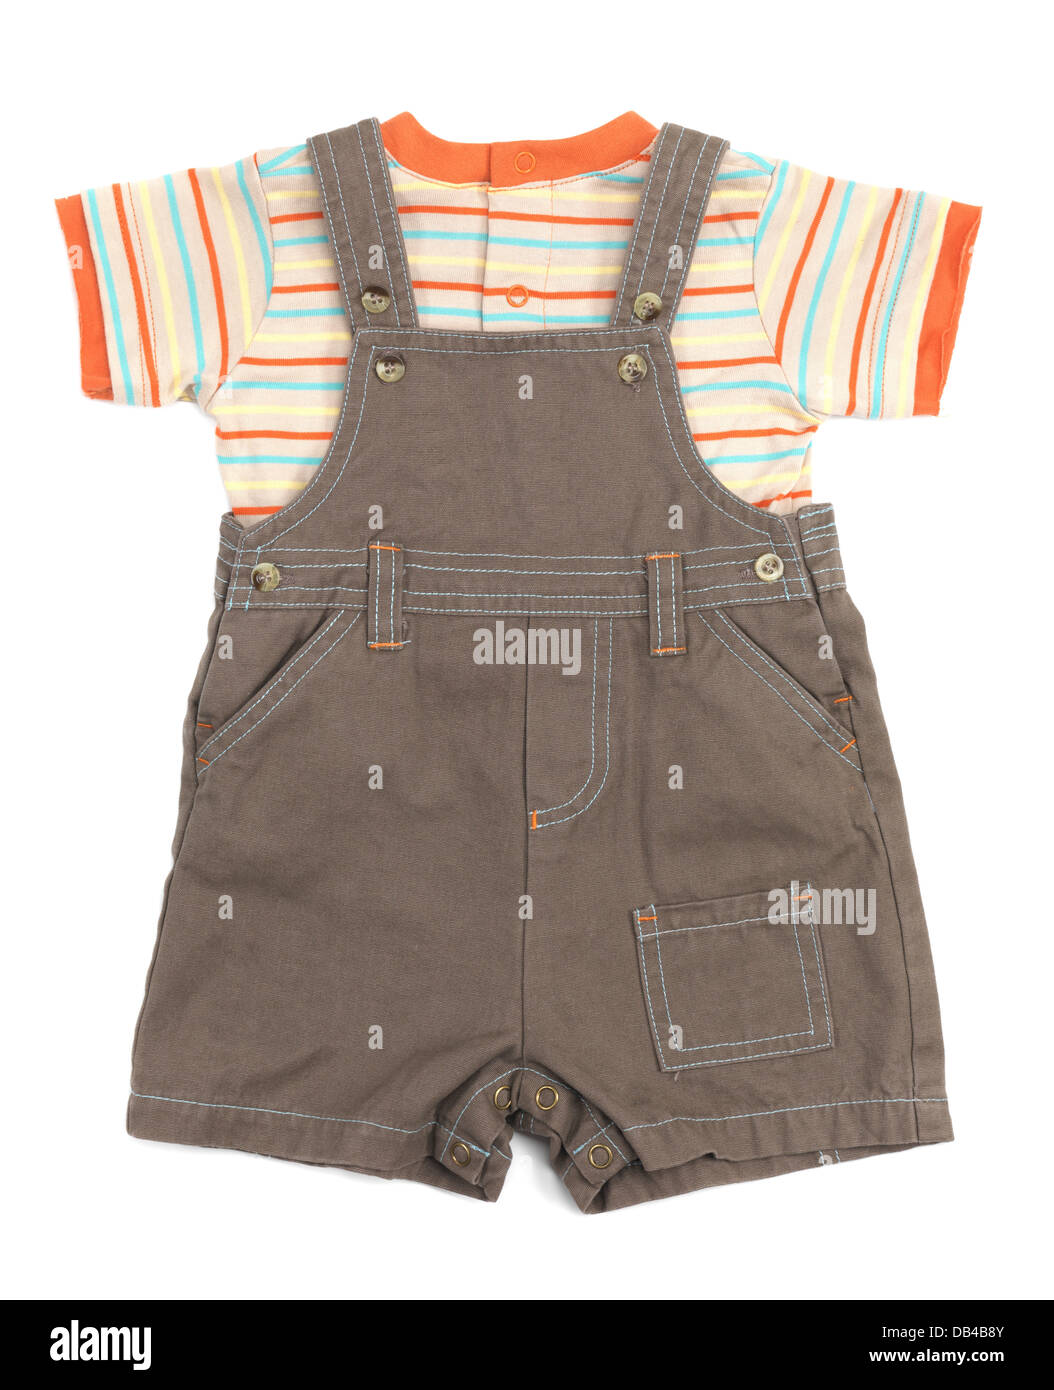 702500234071 Baby overalls and a shirt set of clothes isolated on white ...